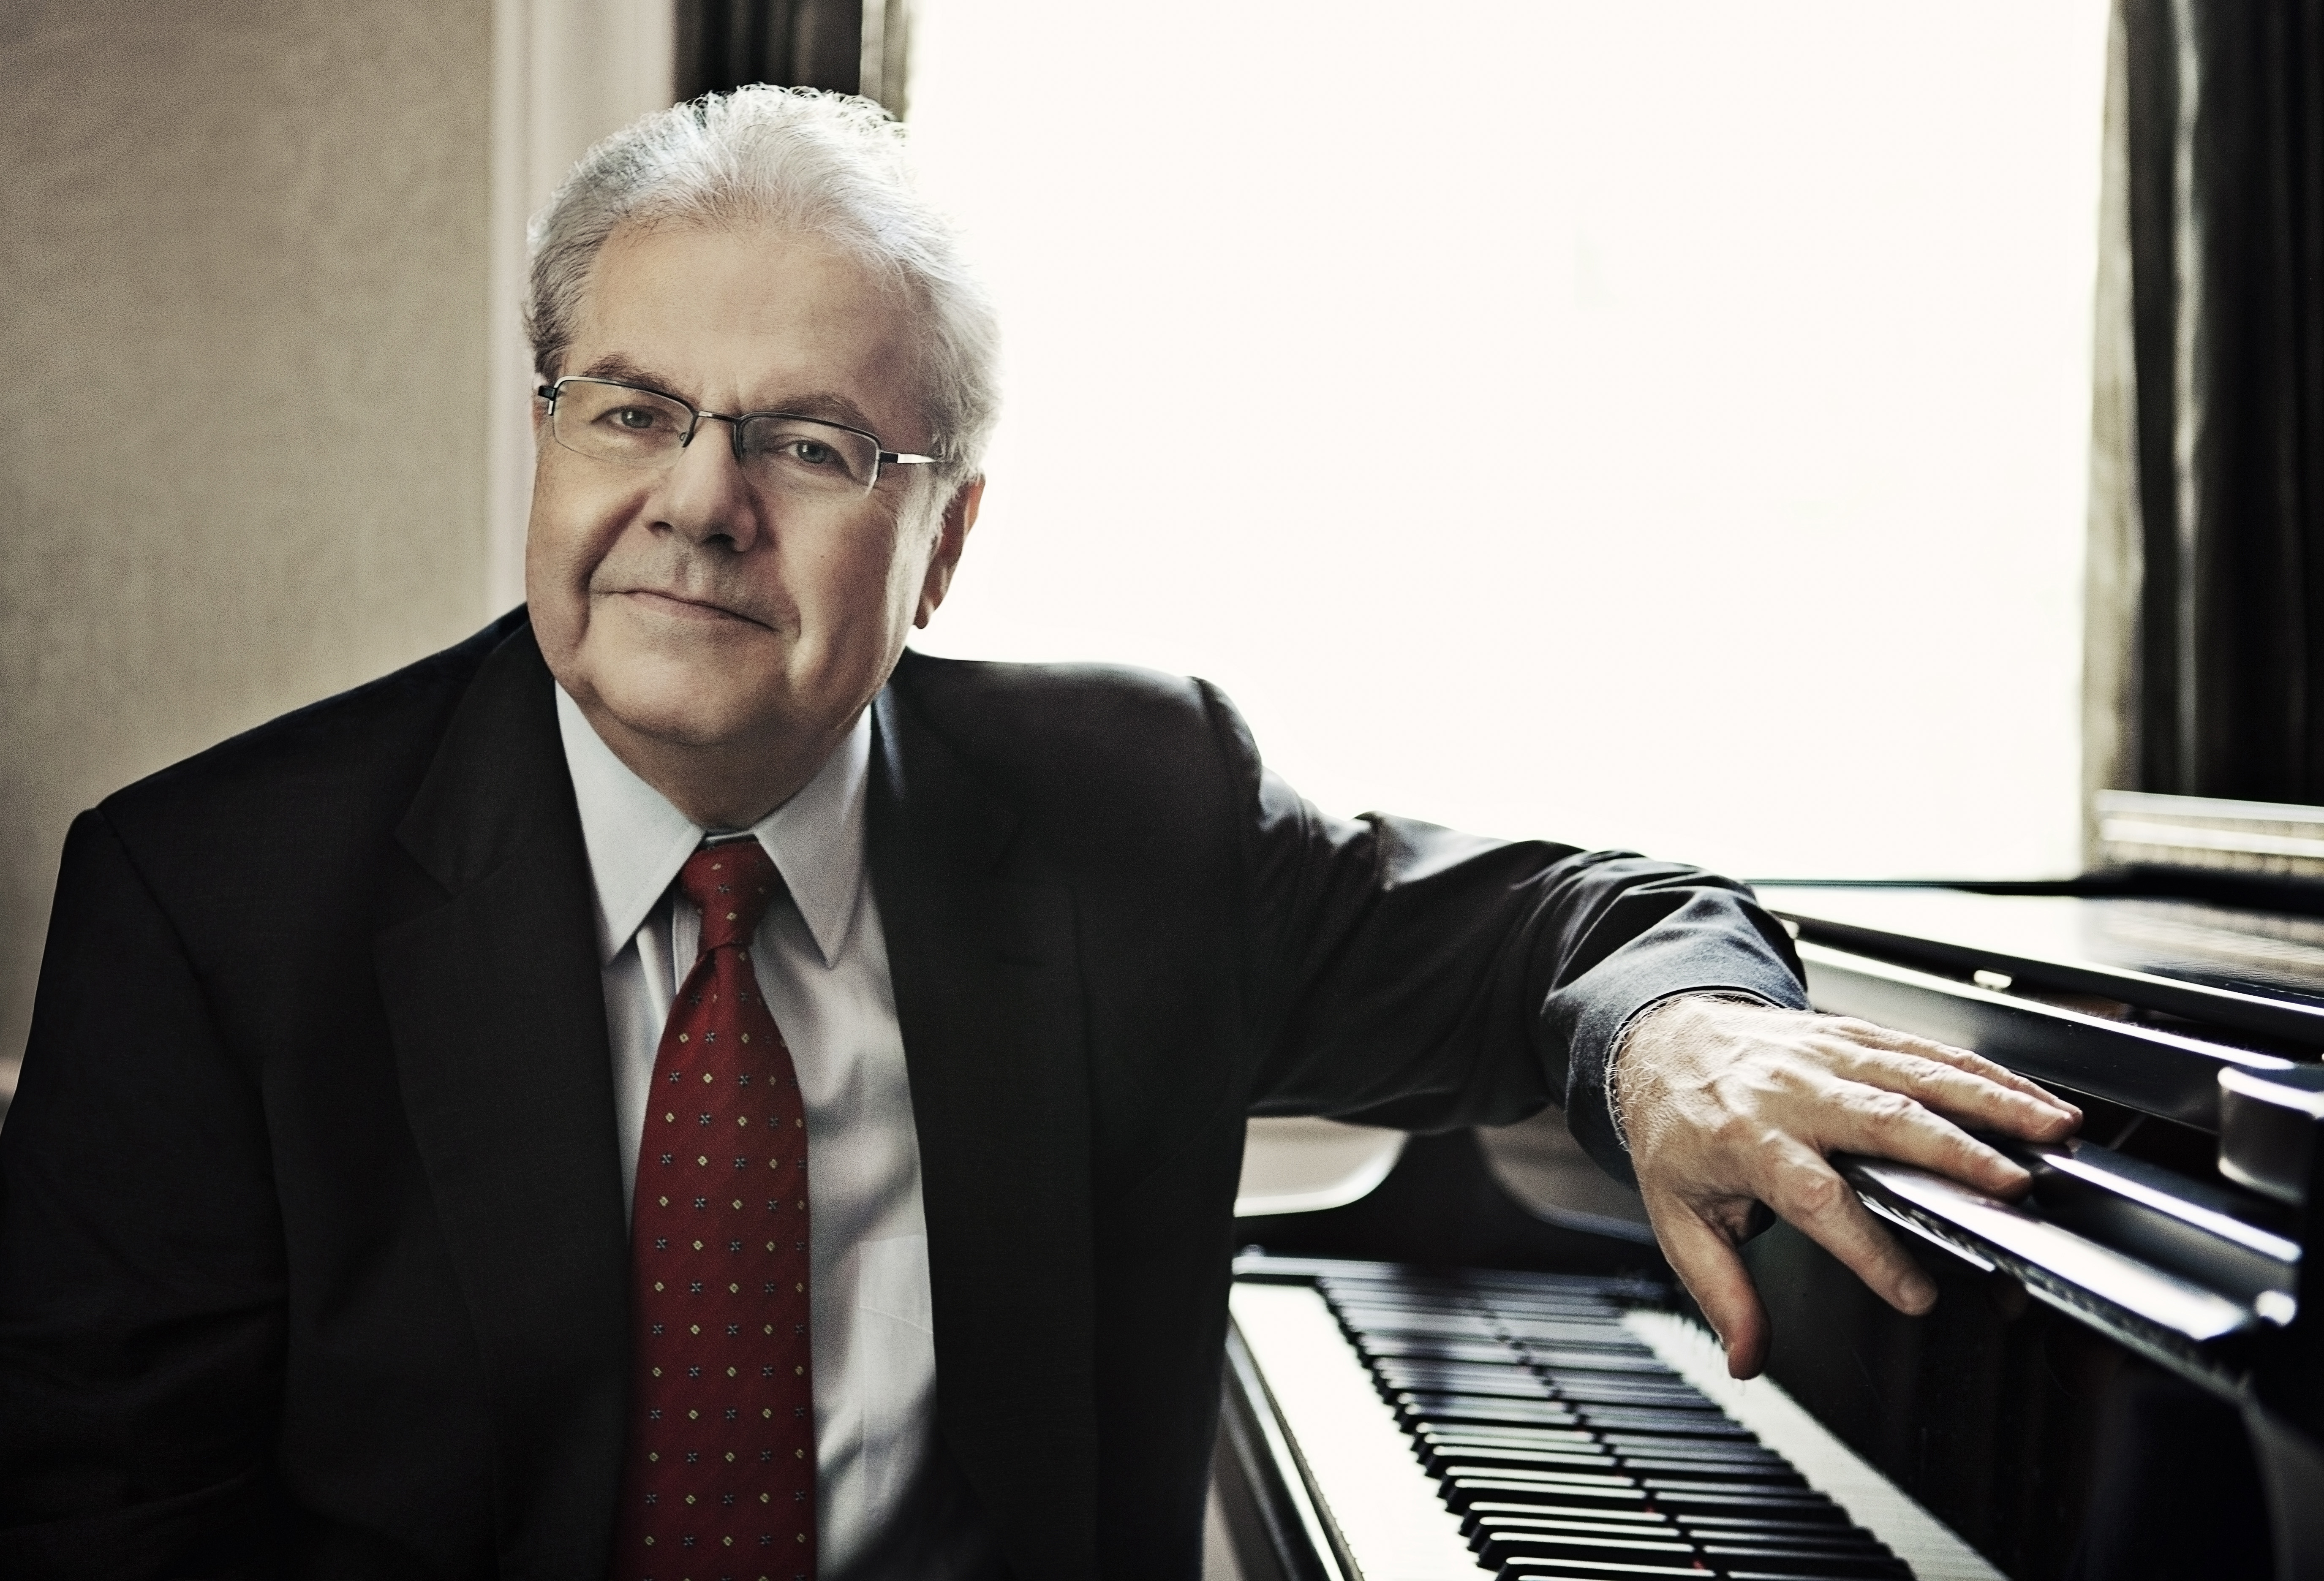 Tues, May 5, 6:00 pm: Master Class with Emanuel Ax – CANCELED